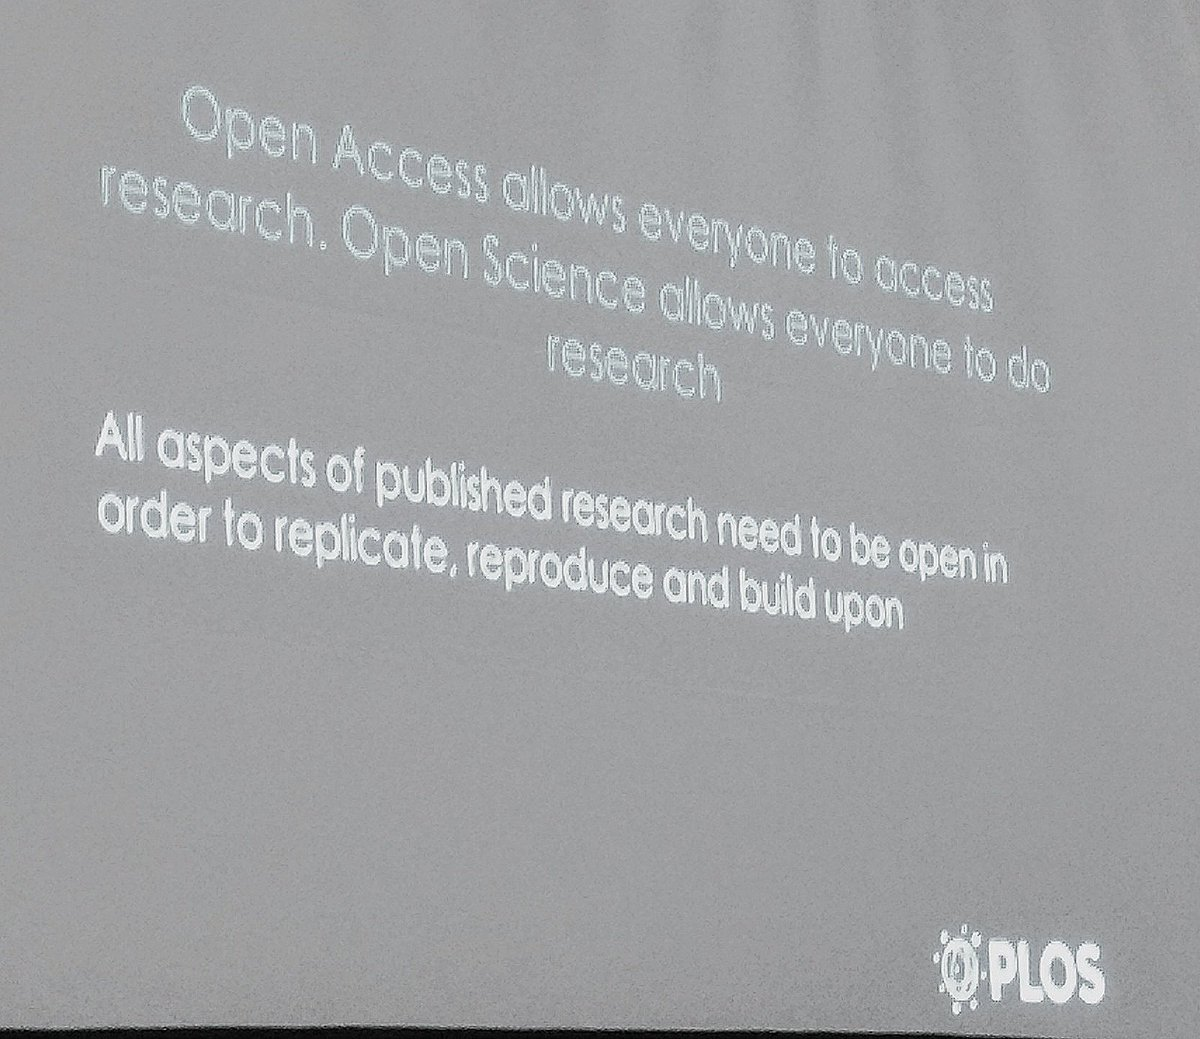 Distinguishing between #openaccess and #openscience, and how they&#39;re connected @joergheber #ISMTE2017 <br>http://pic.twitter.com/qLCpSVFR1V